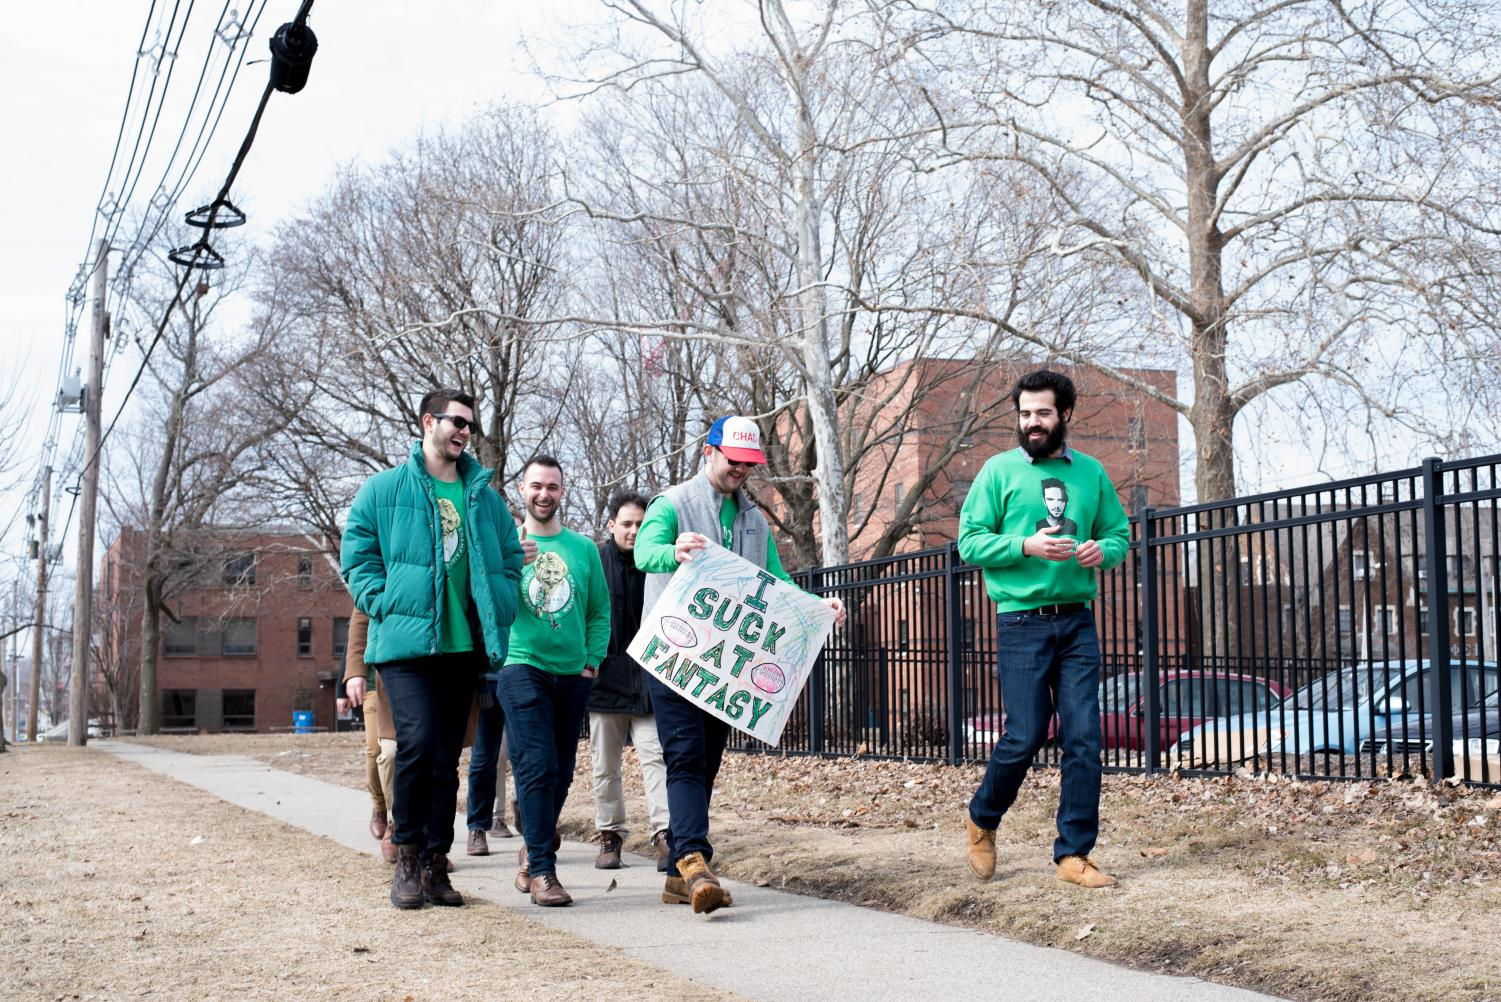 A+group+of+celebrators+walk+along+the+sidewalk+on+Gregory+Street+in+Champaign+on+Friday.